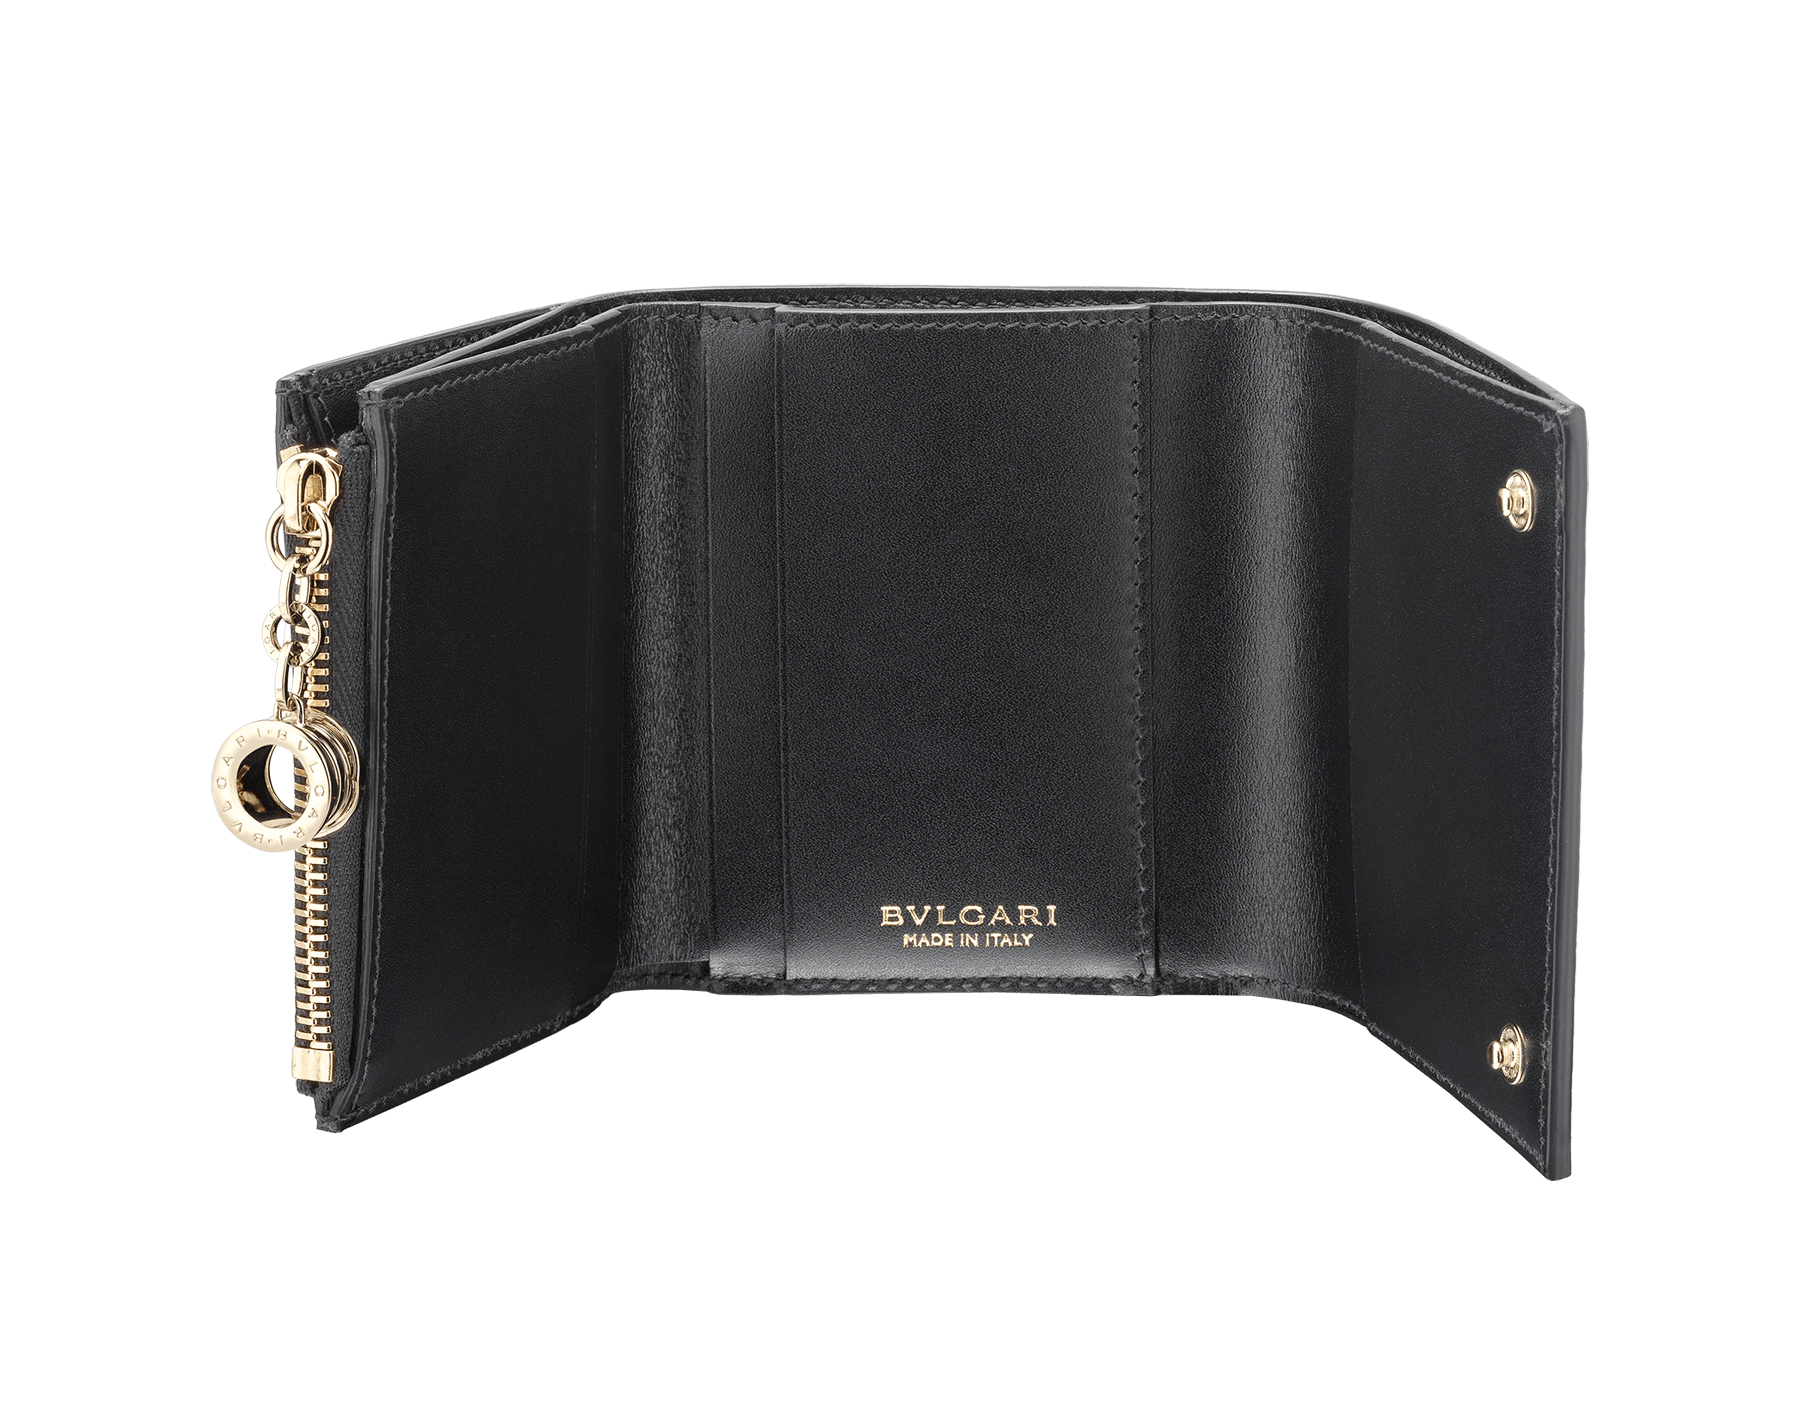 B.zero1 super compact wallet in white and black goatskin. Iconic B.zero1 charm in light gold plated brass. 288243 image 2